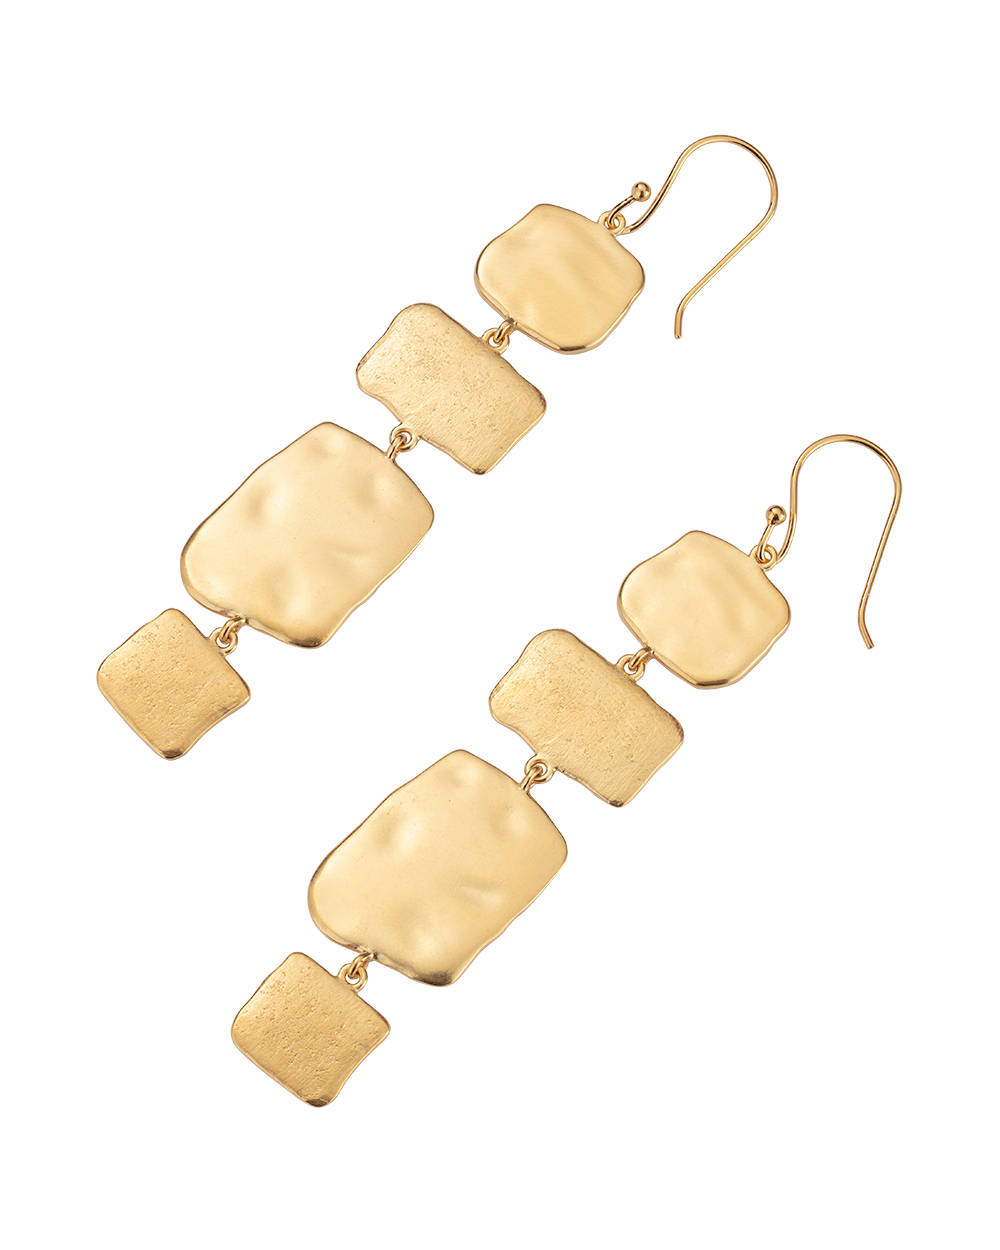 CASCADE EARRINGS (18K-GOLD-PLATED) - SIDE